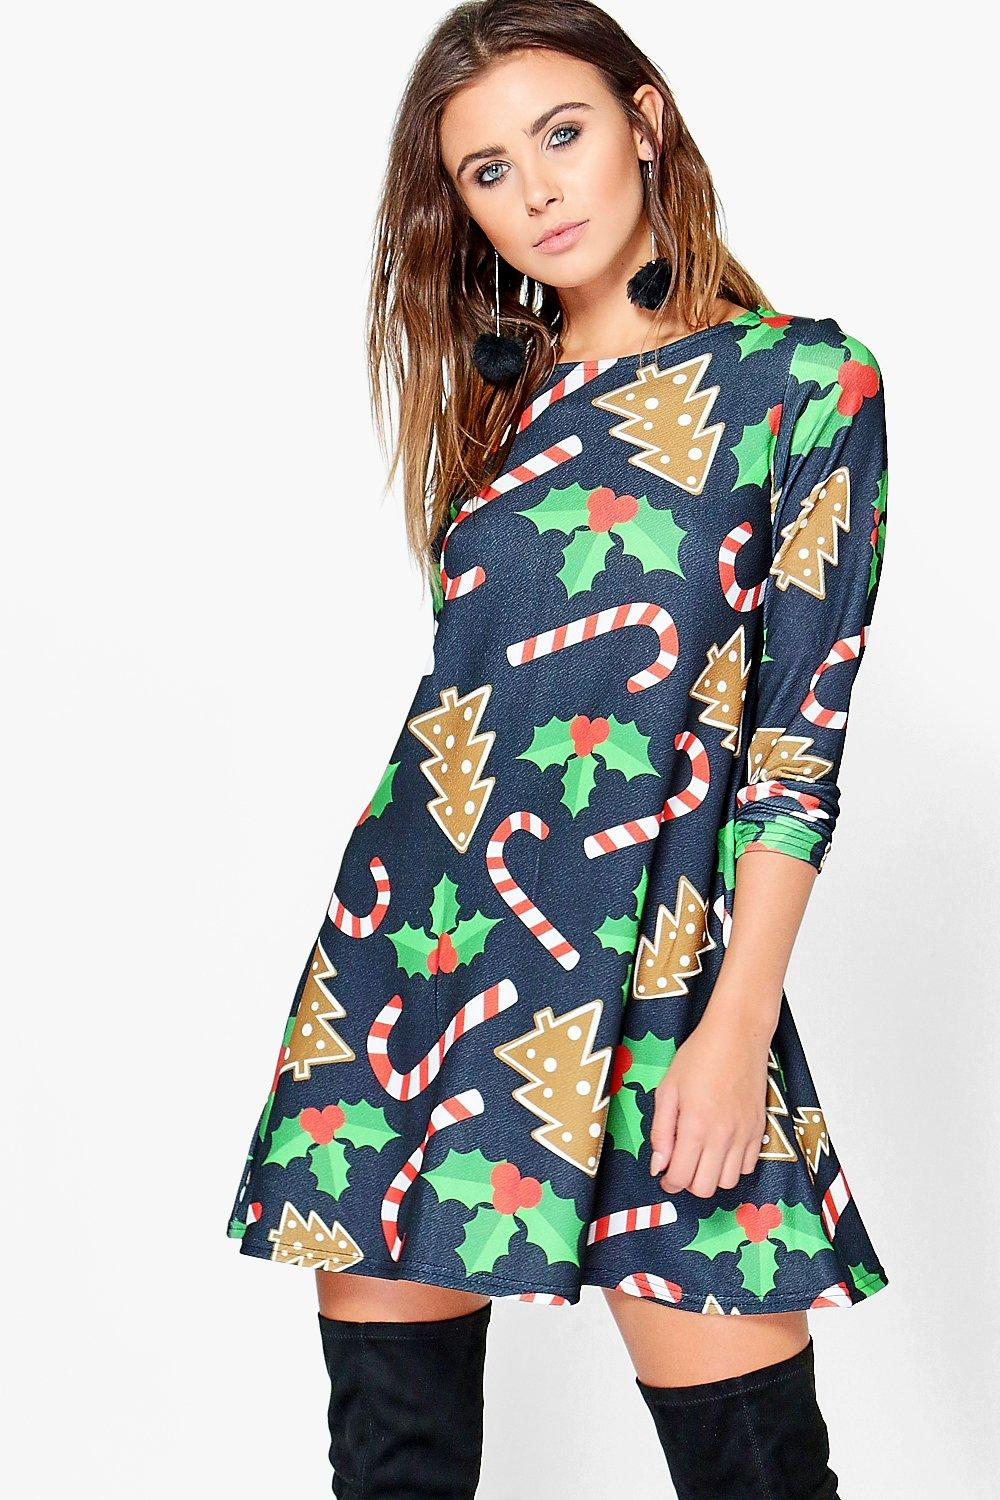 Petite Ellie Candy Cane Printed Swing Dress